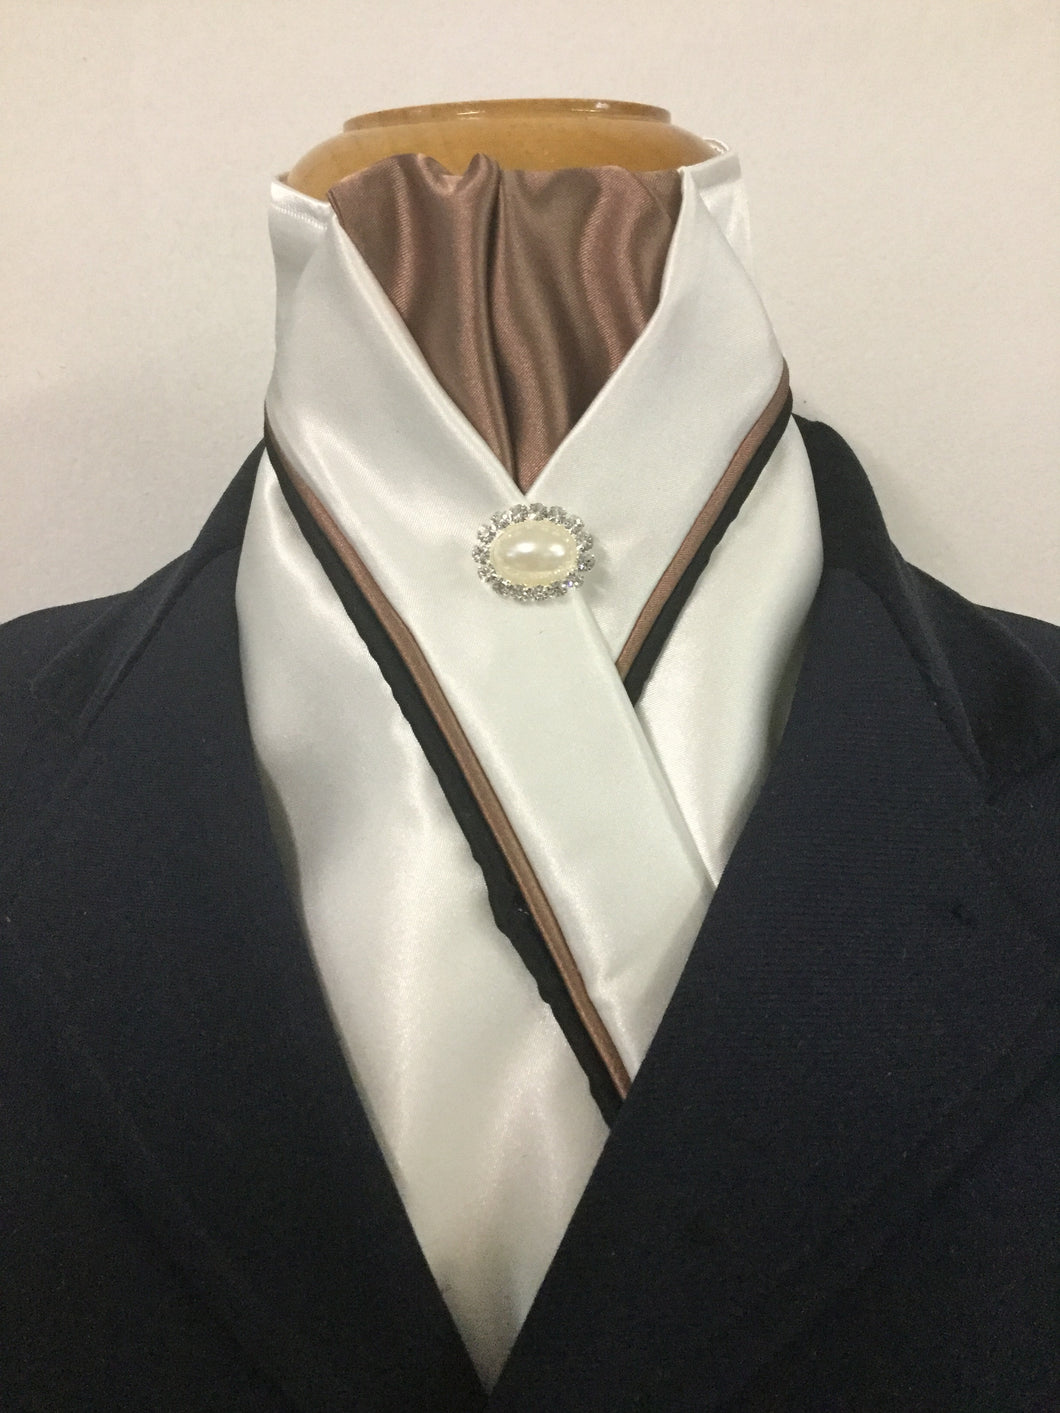 HHD Ivory Cream Custom Stock Tie in Antique Gold & Black Pearl Pin